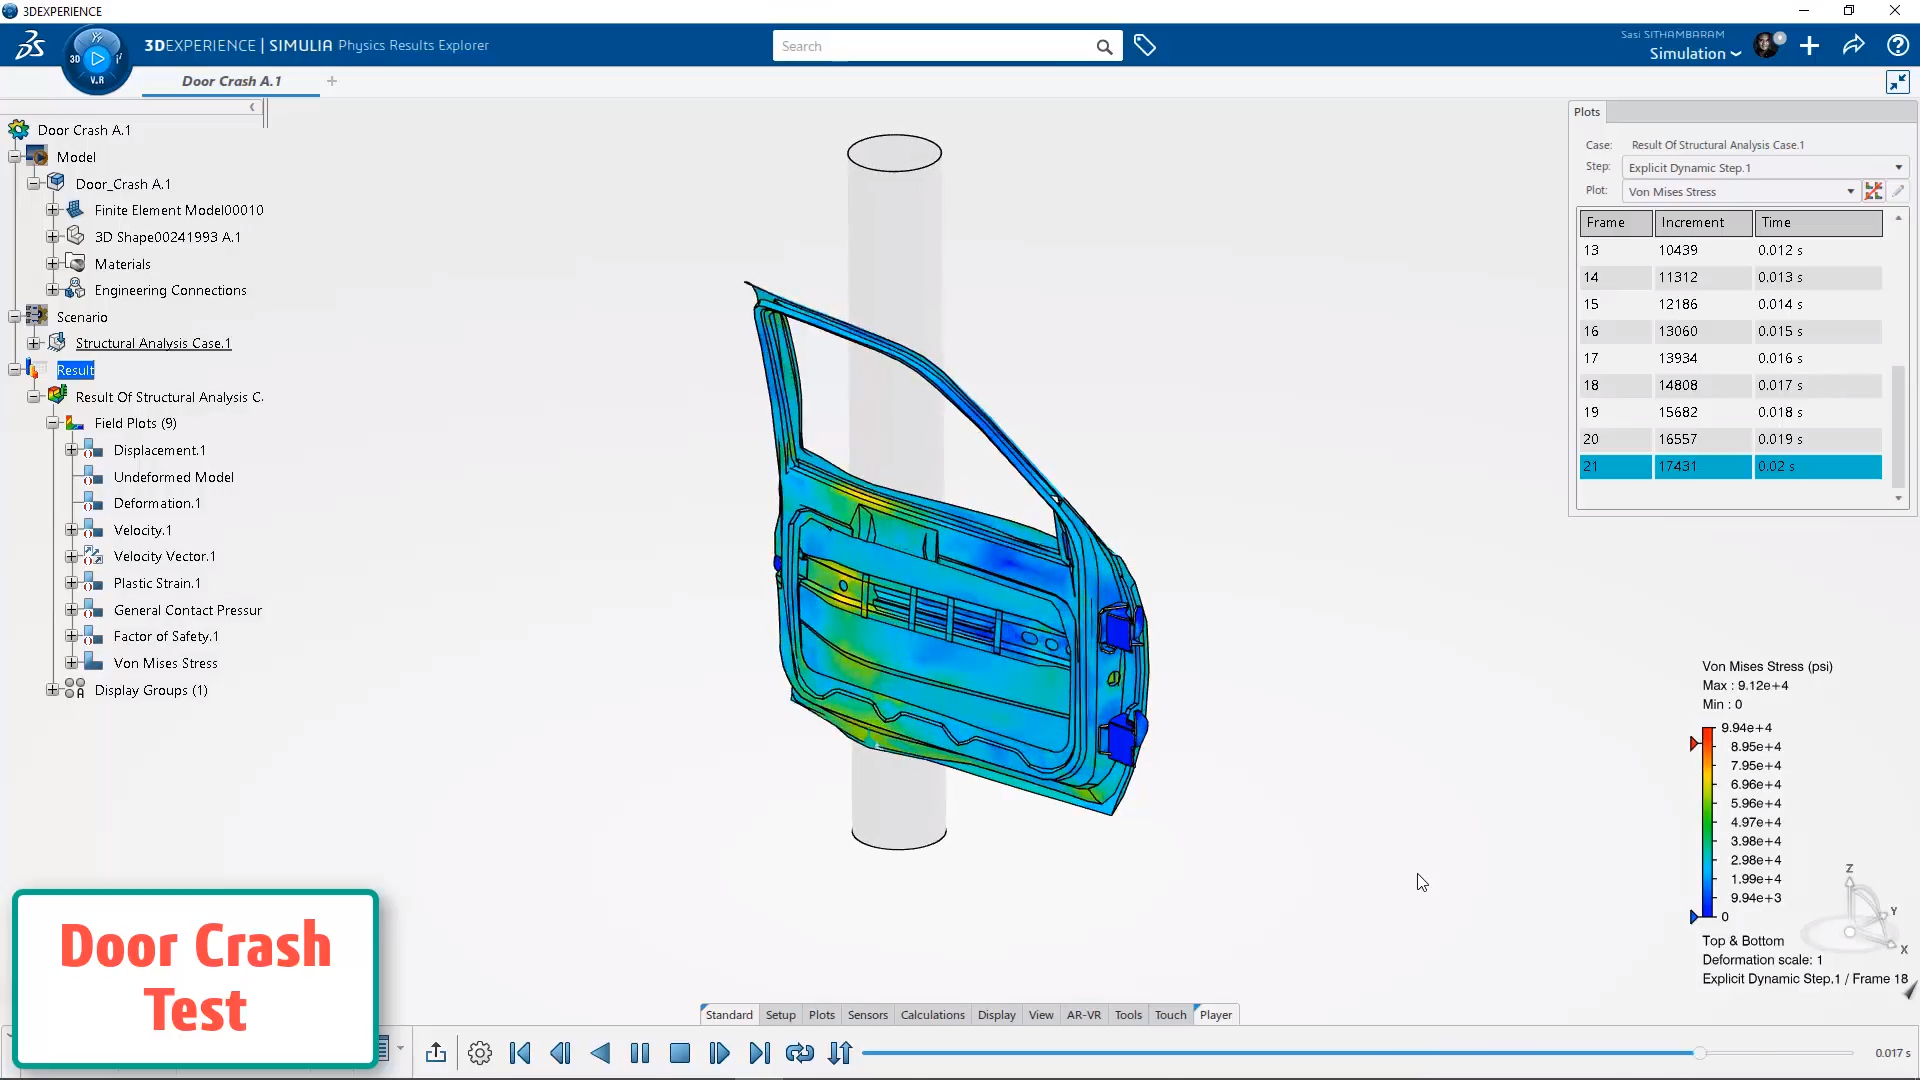 Solving the Unsolvable: Extend Your Simulation Capabilities with SIMULIAworks